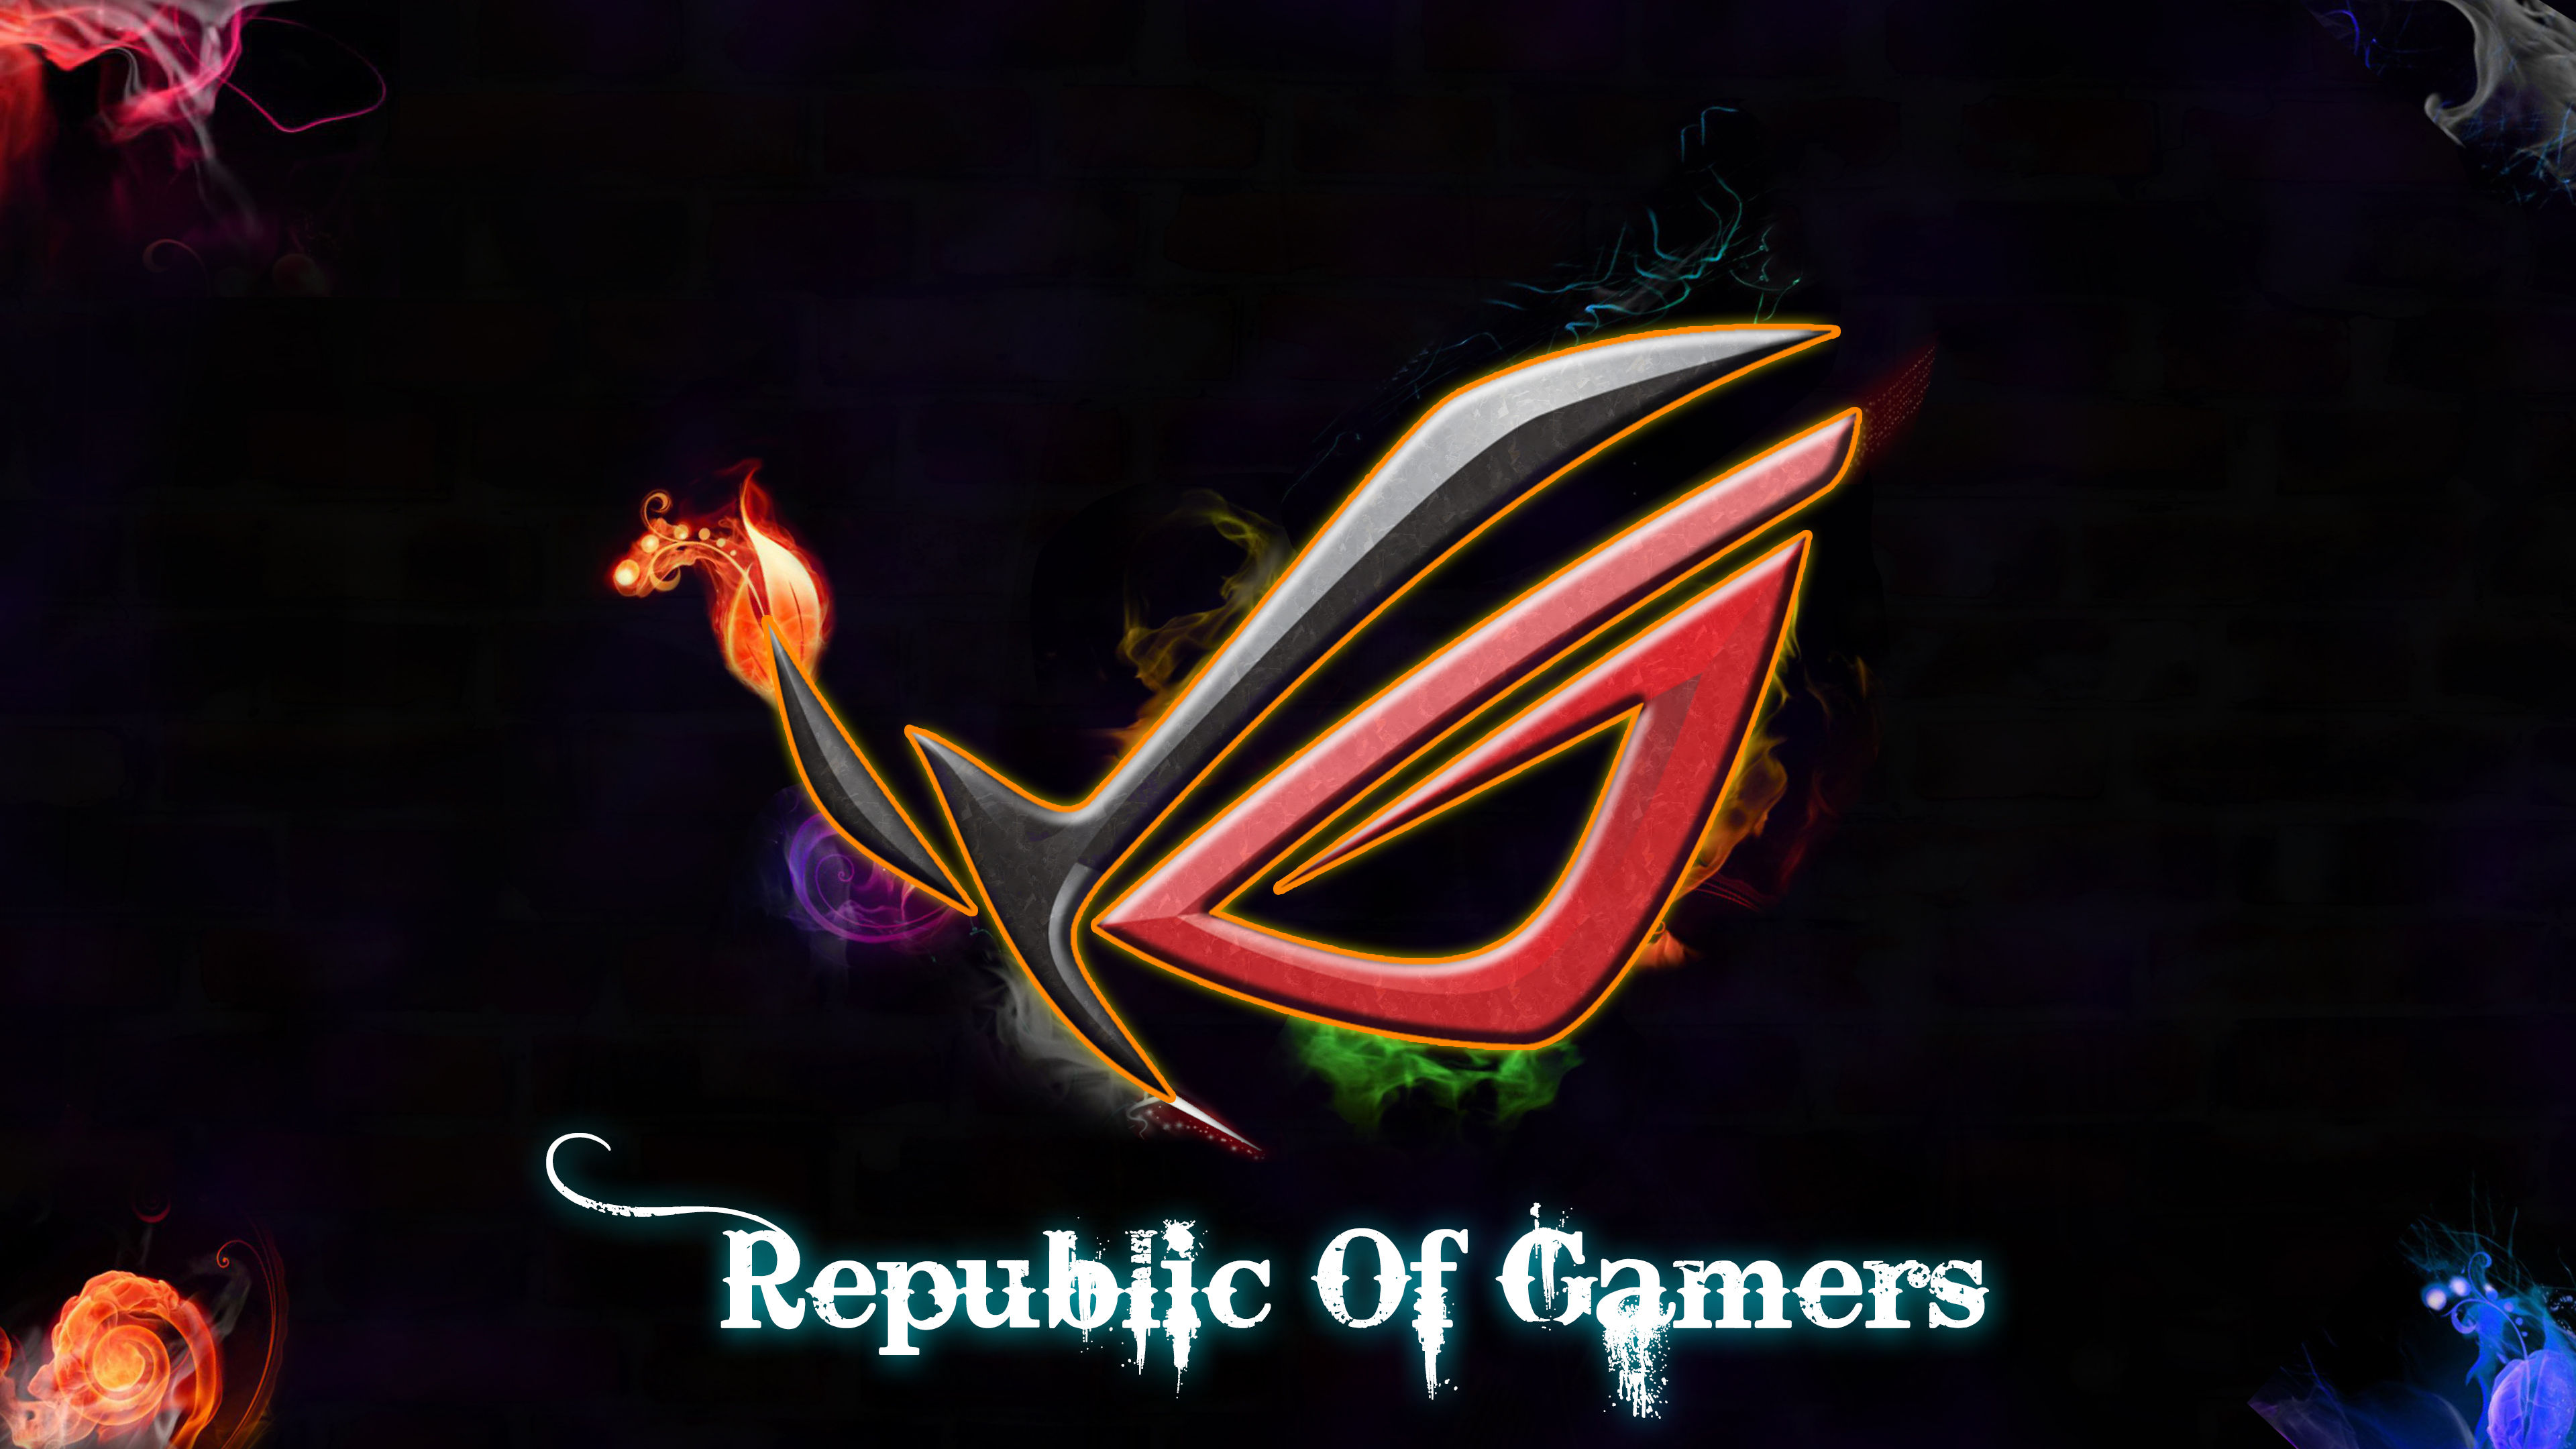 Asus pb287q monitor 2014 4k uhd wallpaper competition page 64 - Rog 4k Wallpaper Collection 2014 Republic Of Gamers